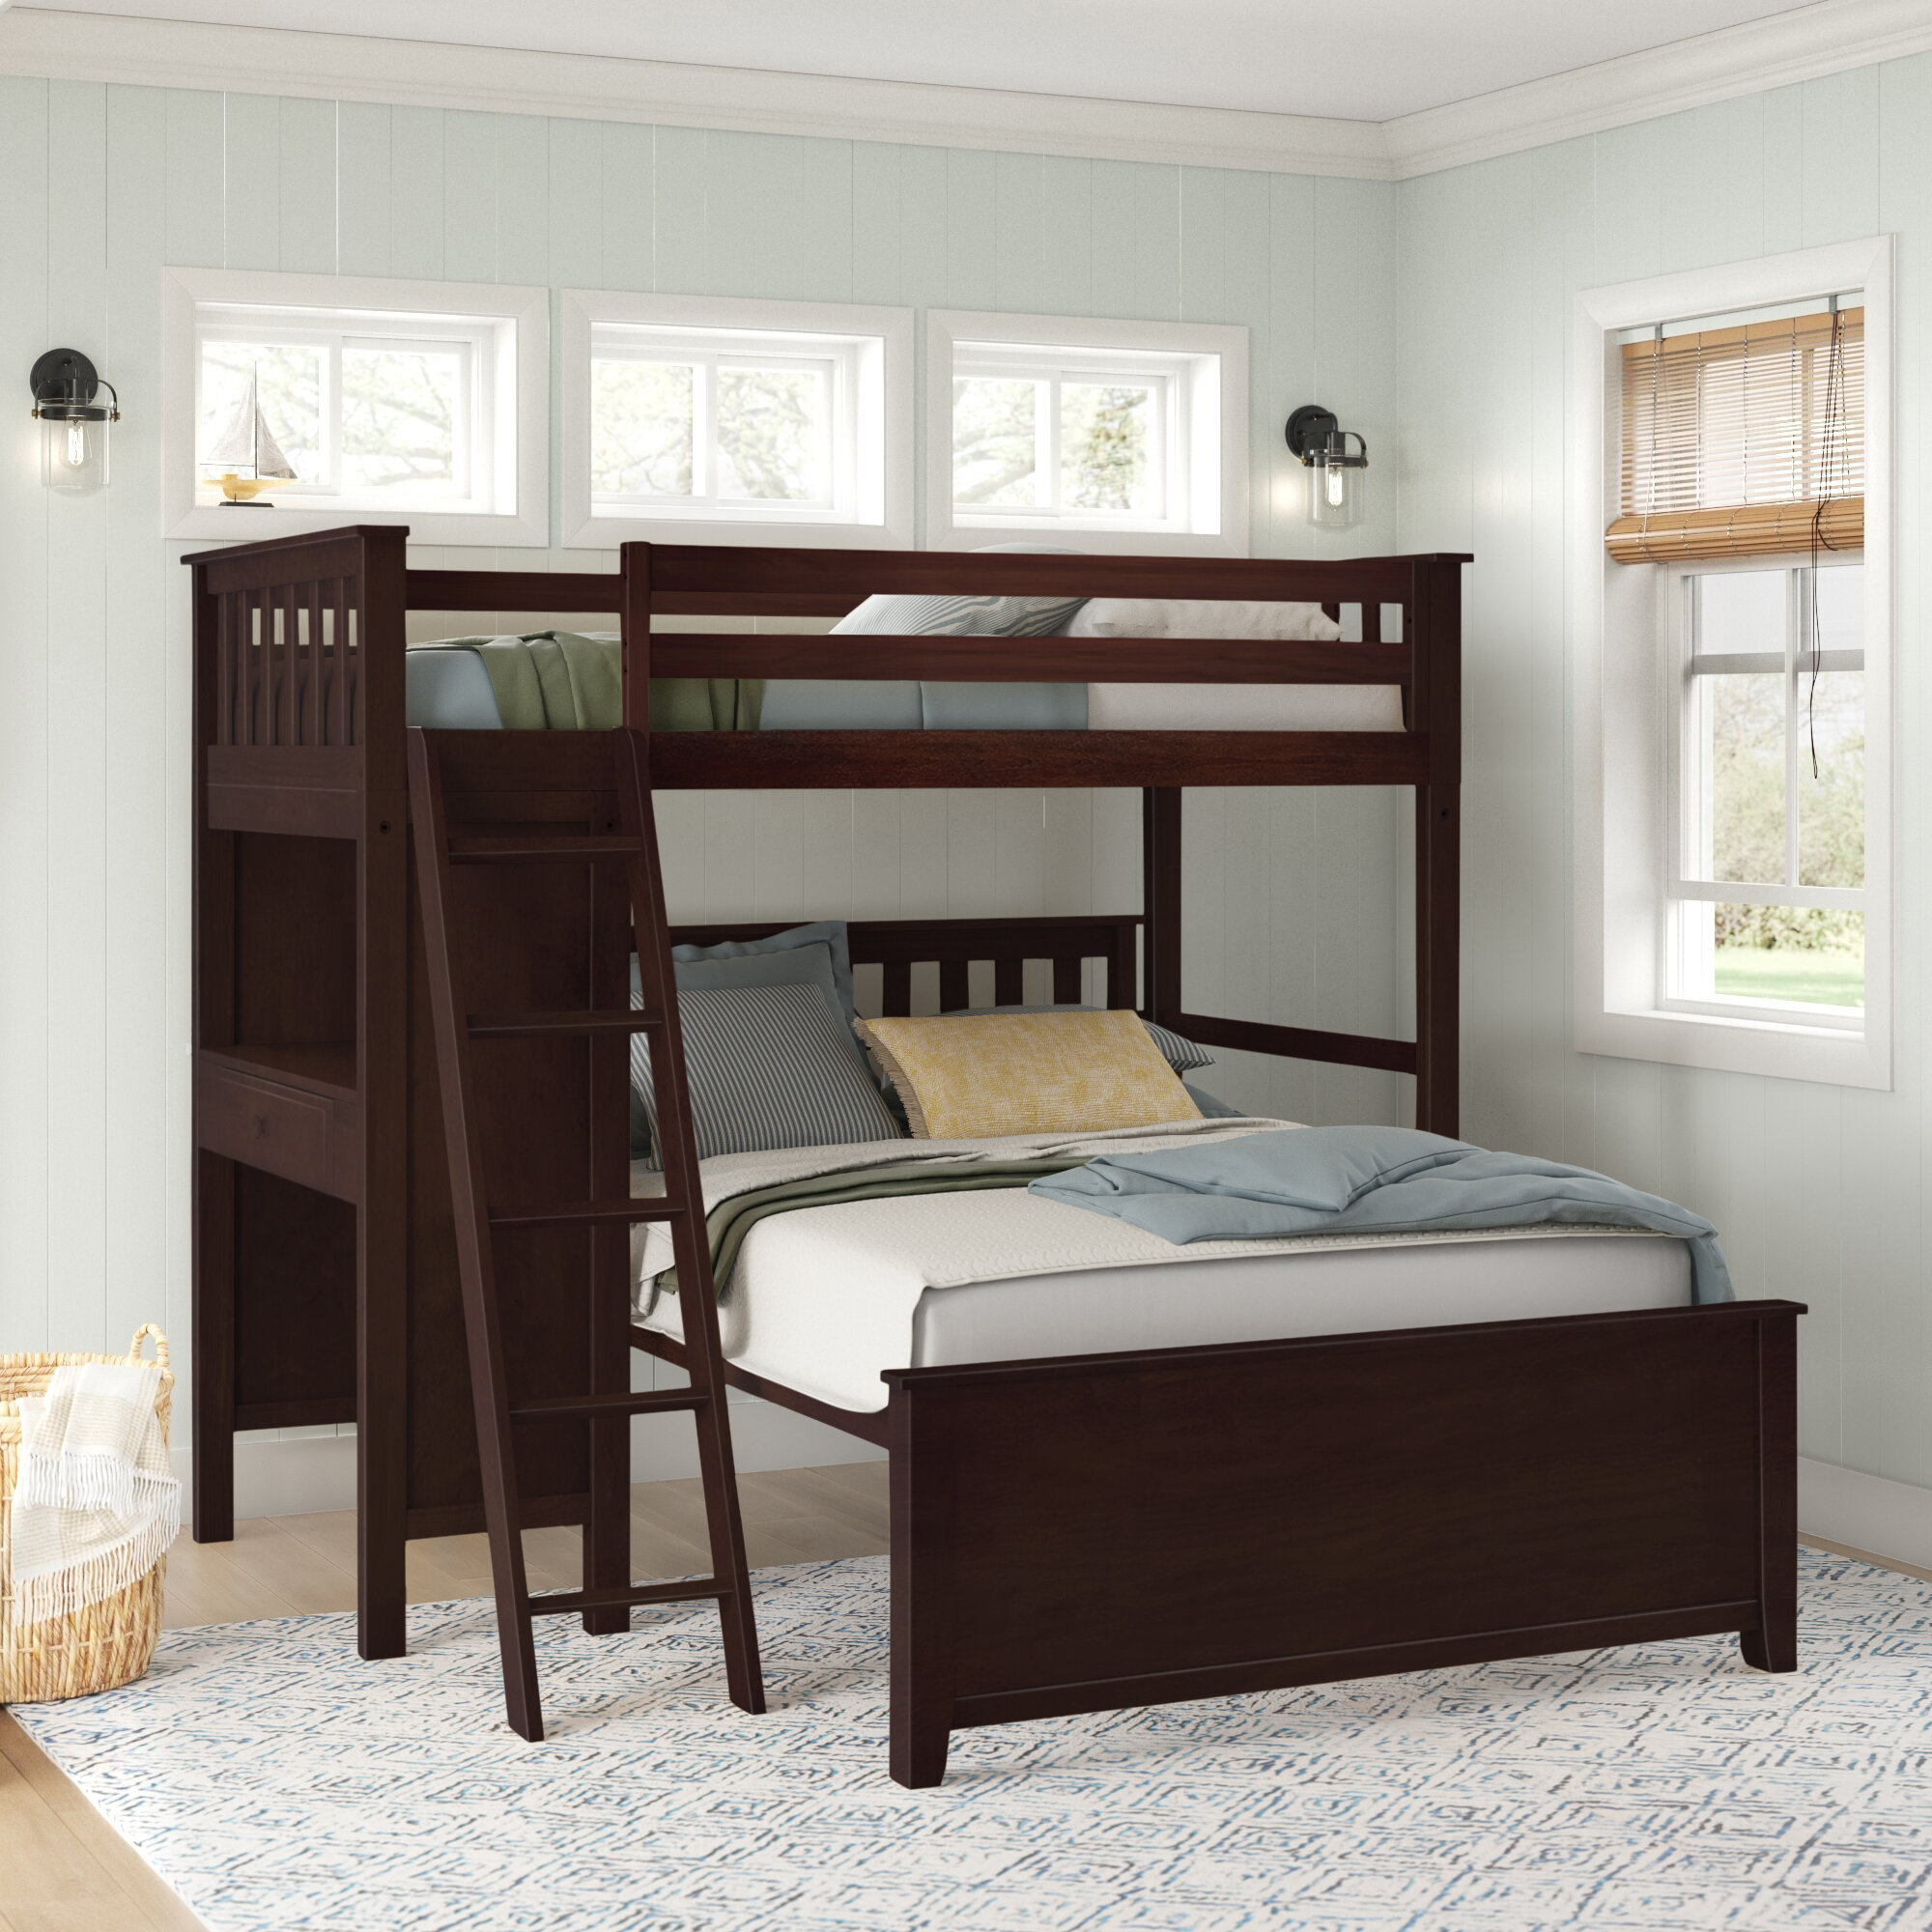 Sand Stable Baby Kids Ambrie Twin Over Full Solid Wood L Shaped Bunk Beds With Built In Desk By Sand Stable Baby Kids Reviews Wayfair